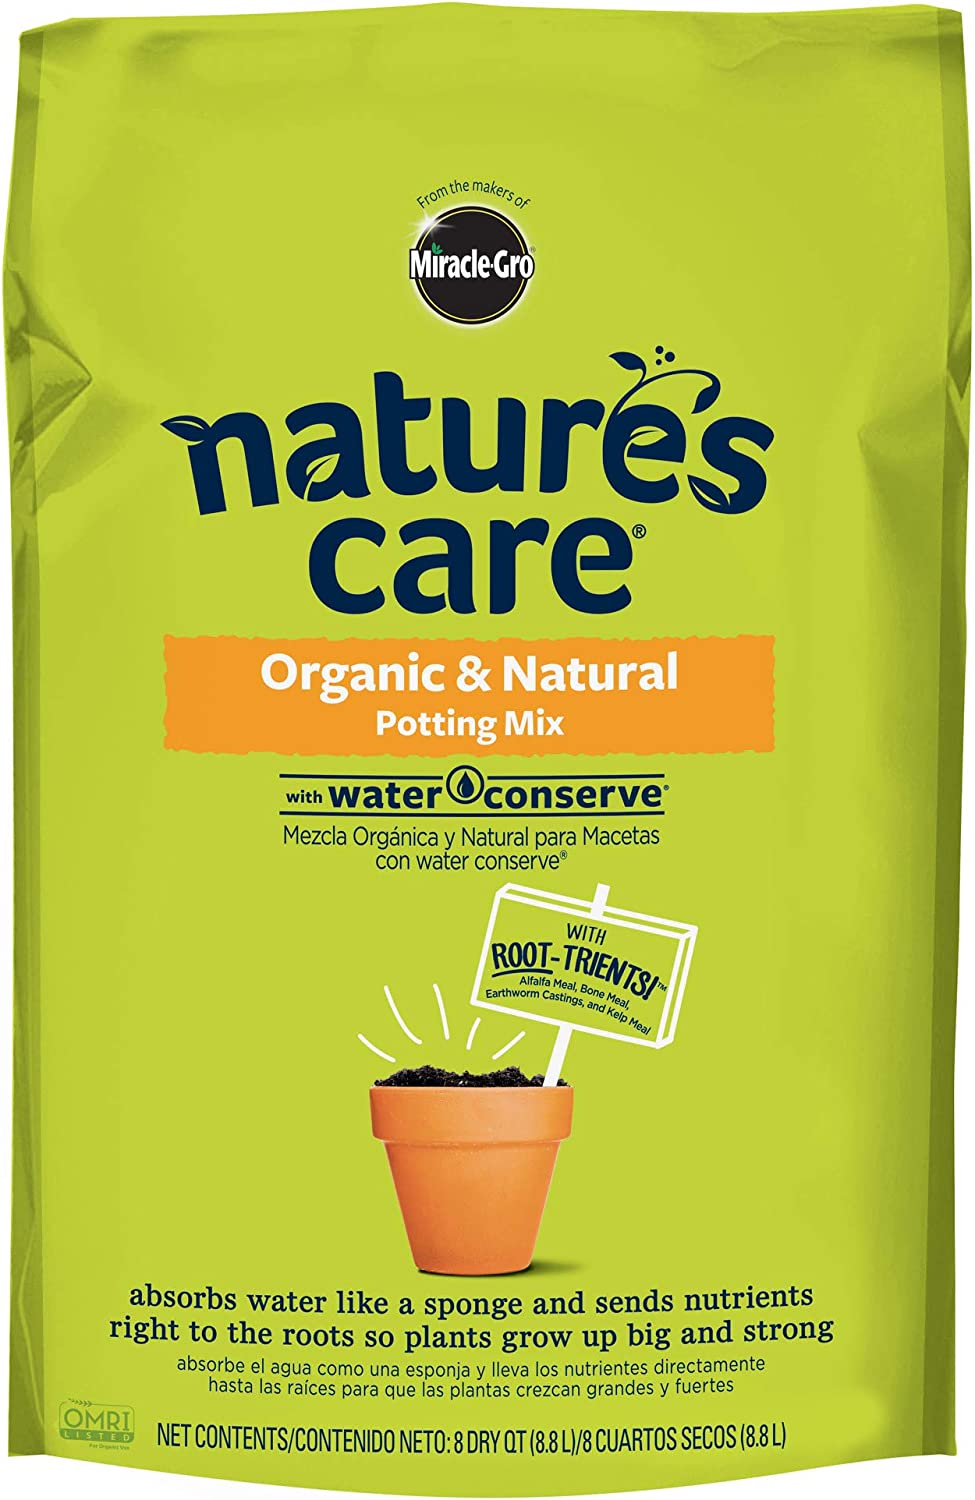 Nature's Care Organic & Natural Potting Mix with Water Conserve, 8 oz.